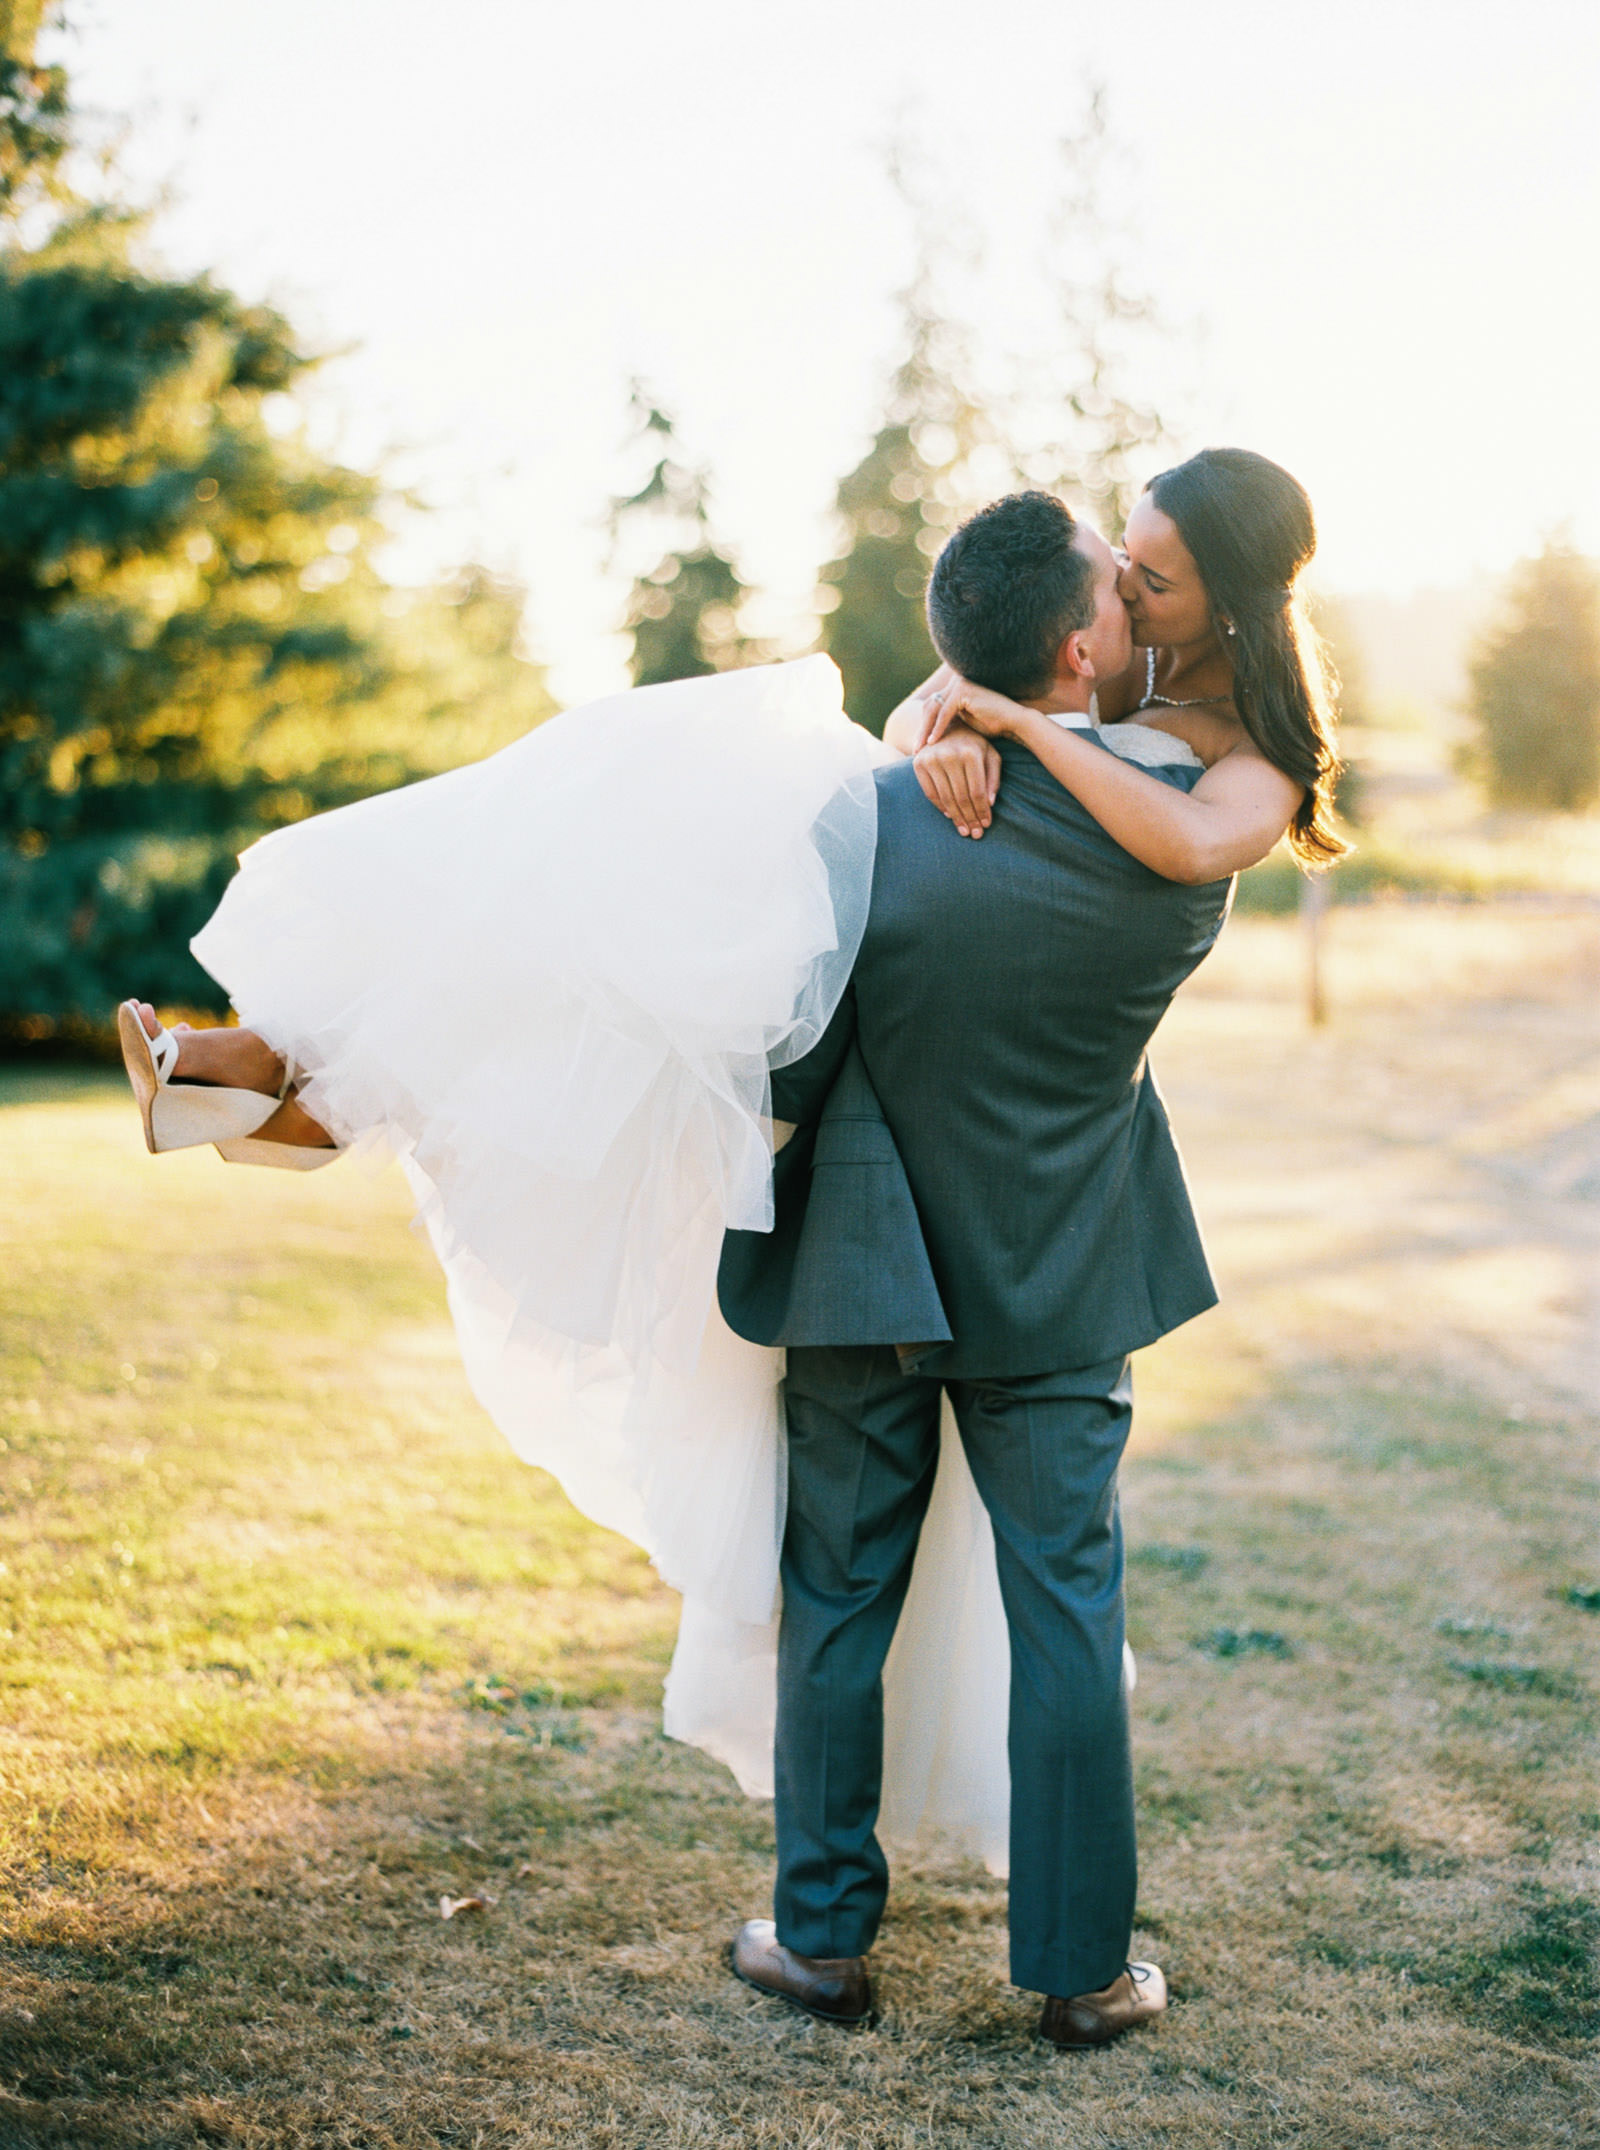 Elegant Bride and Groom portraits at a Fall Kelley Farms Wedding   Seattle Wedding Photographer Anna Peters